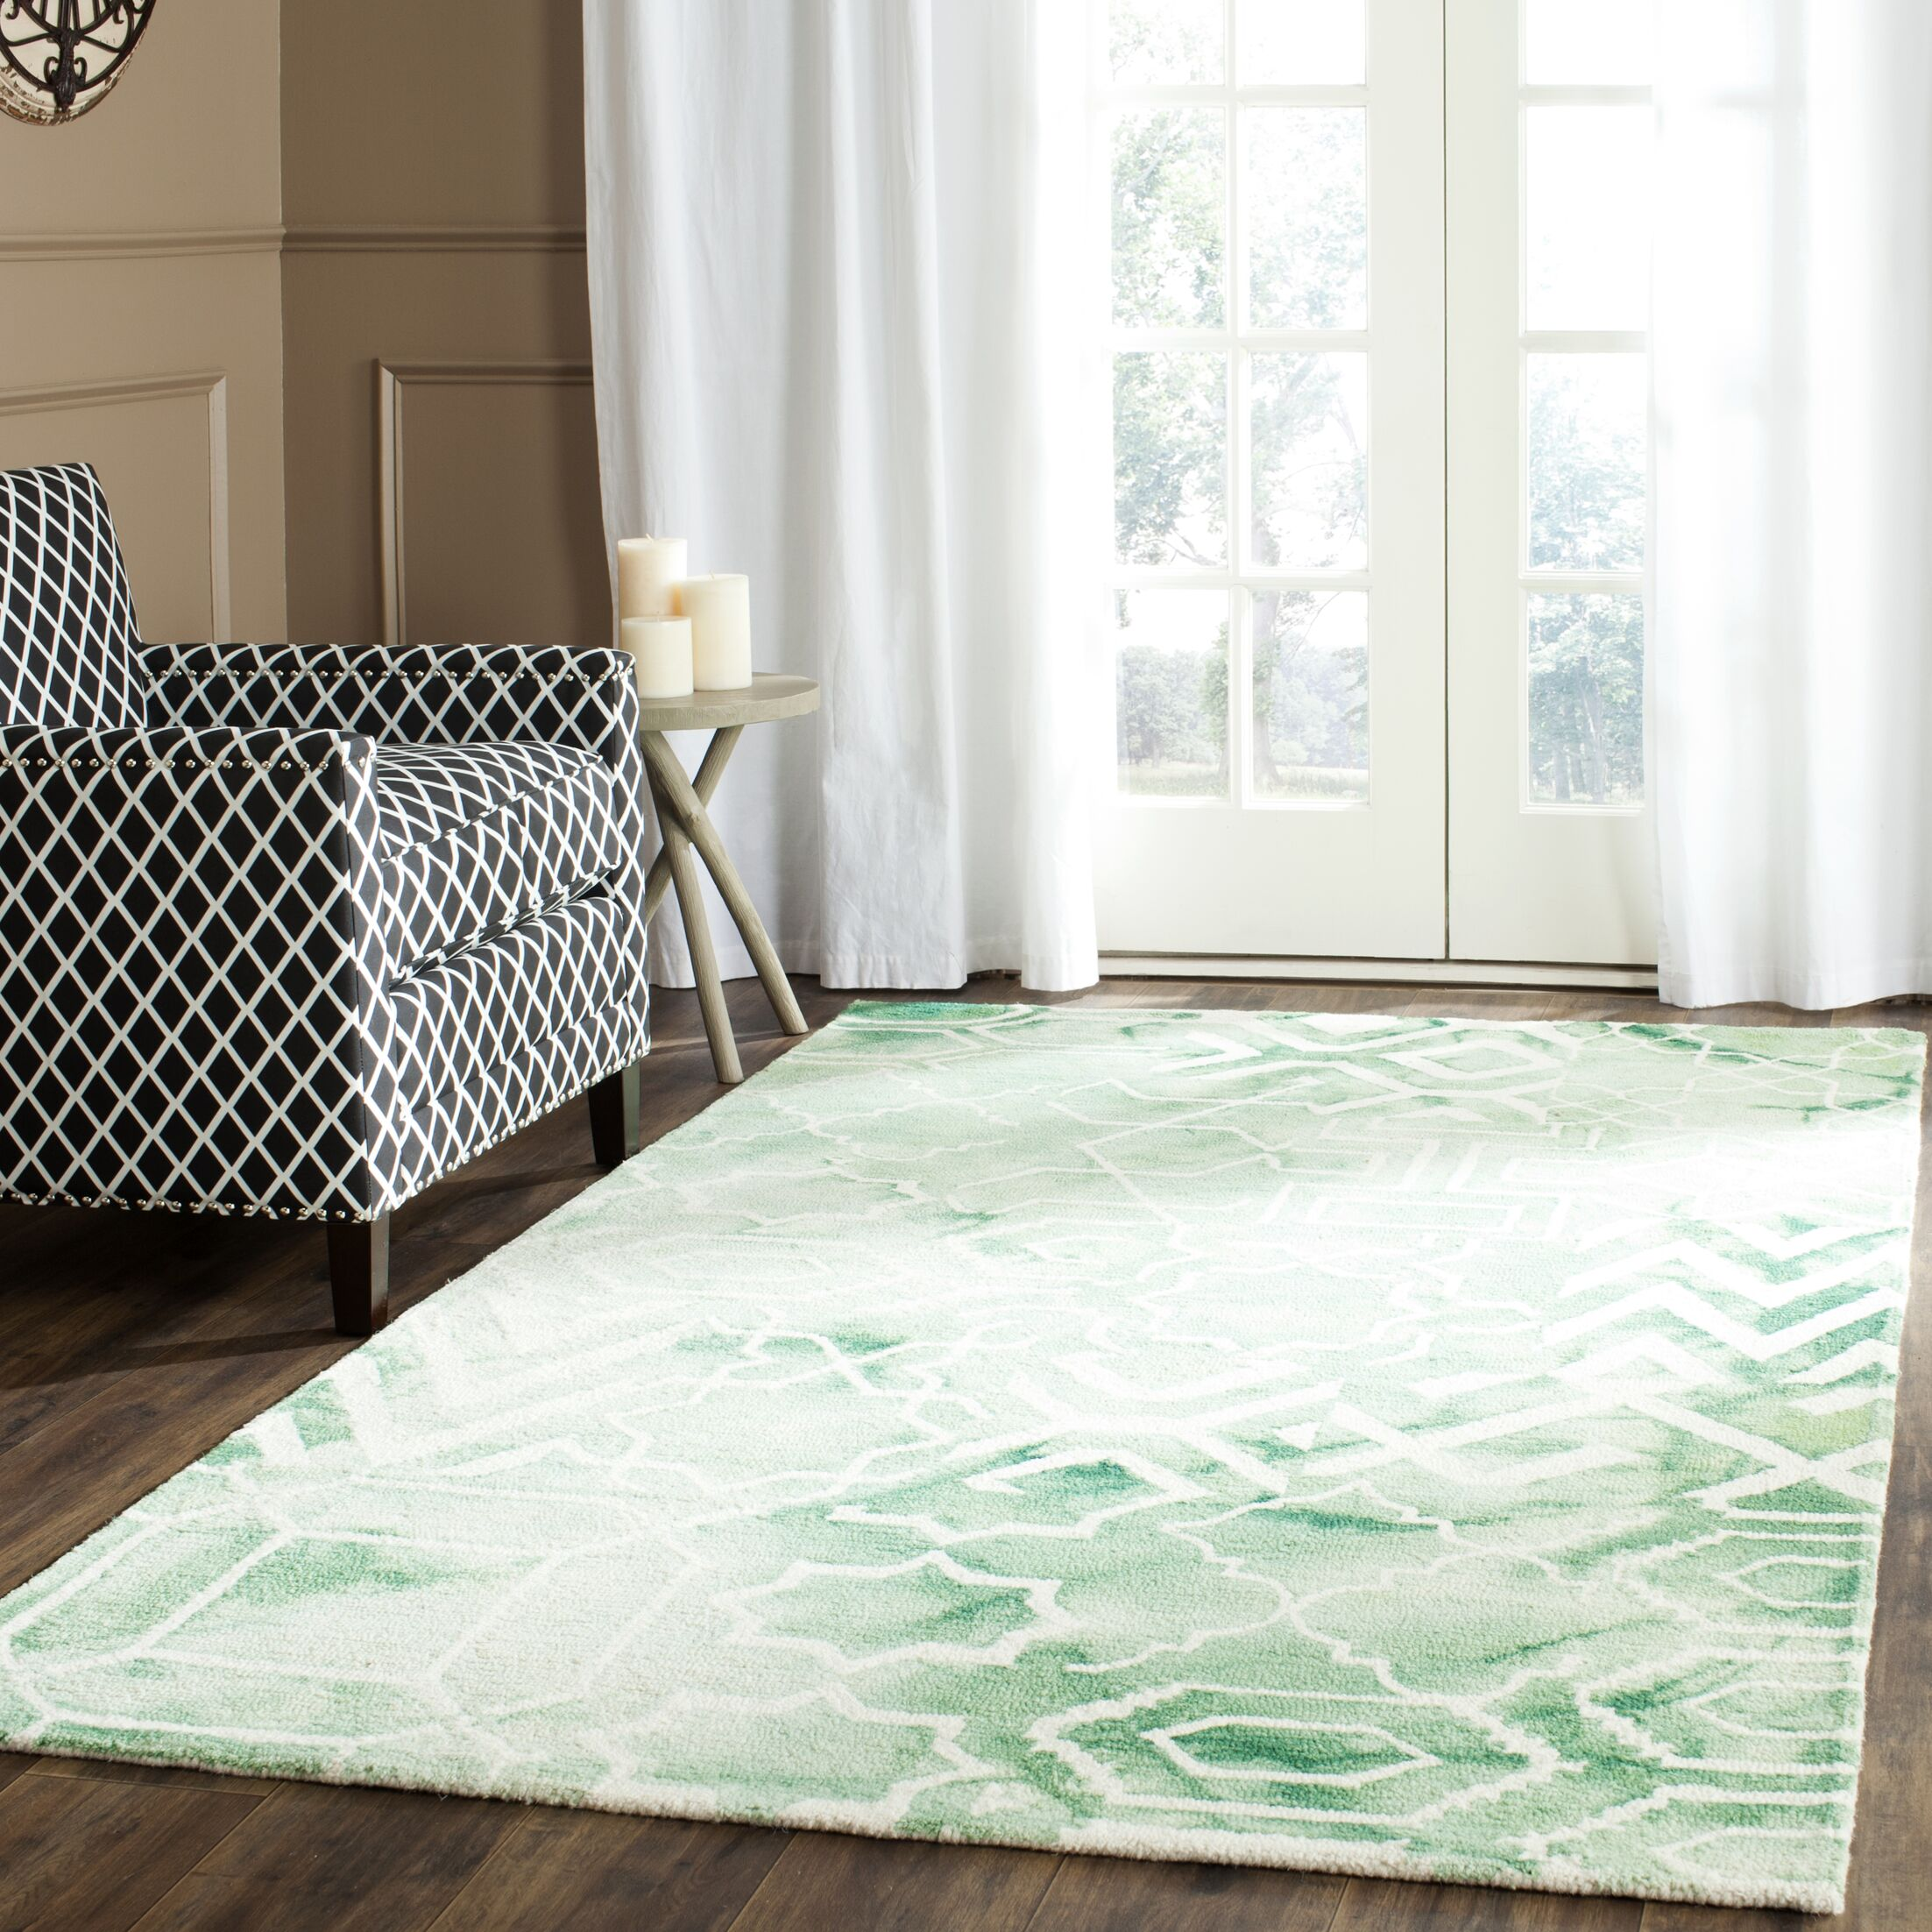 Landry Hand-Tufted Green/Ivory Area Rug Rug Size: Rectangle 6' x 9'